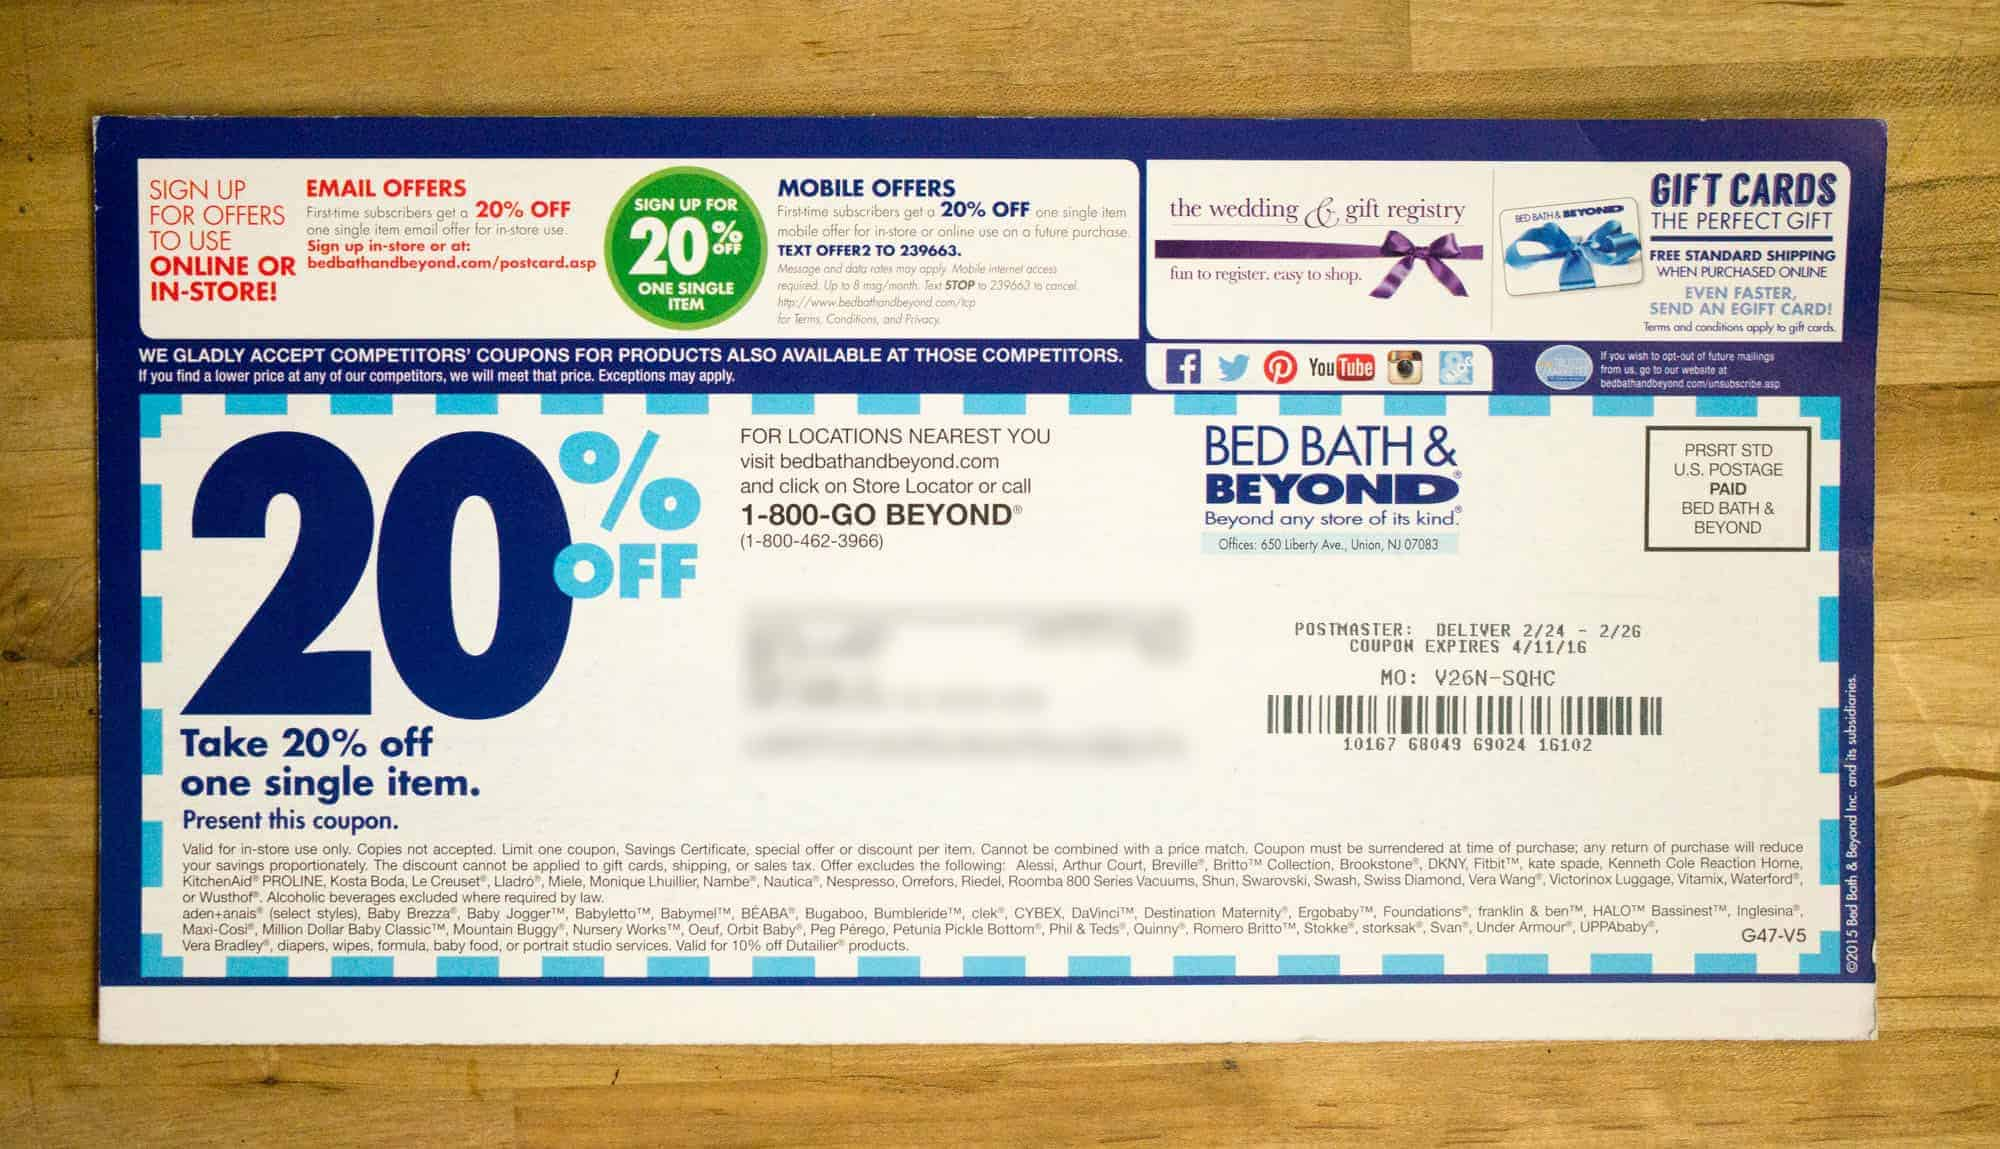 Picture of the backside of the Bed Bath & Beyond postcard.